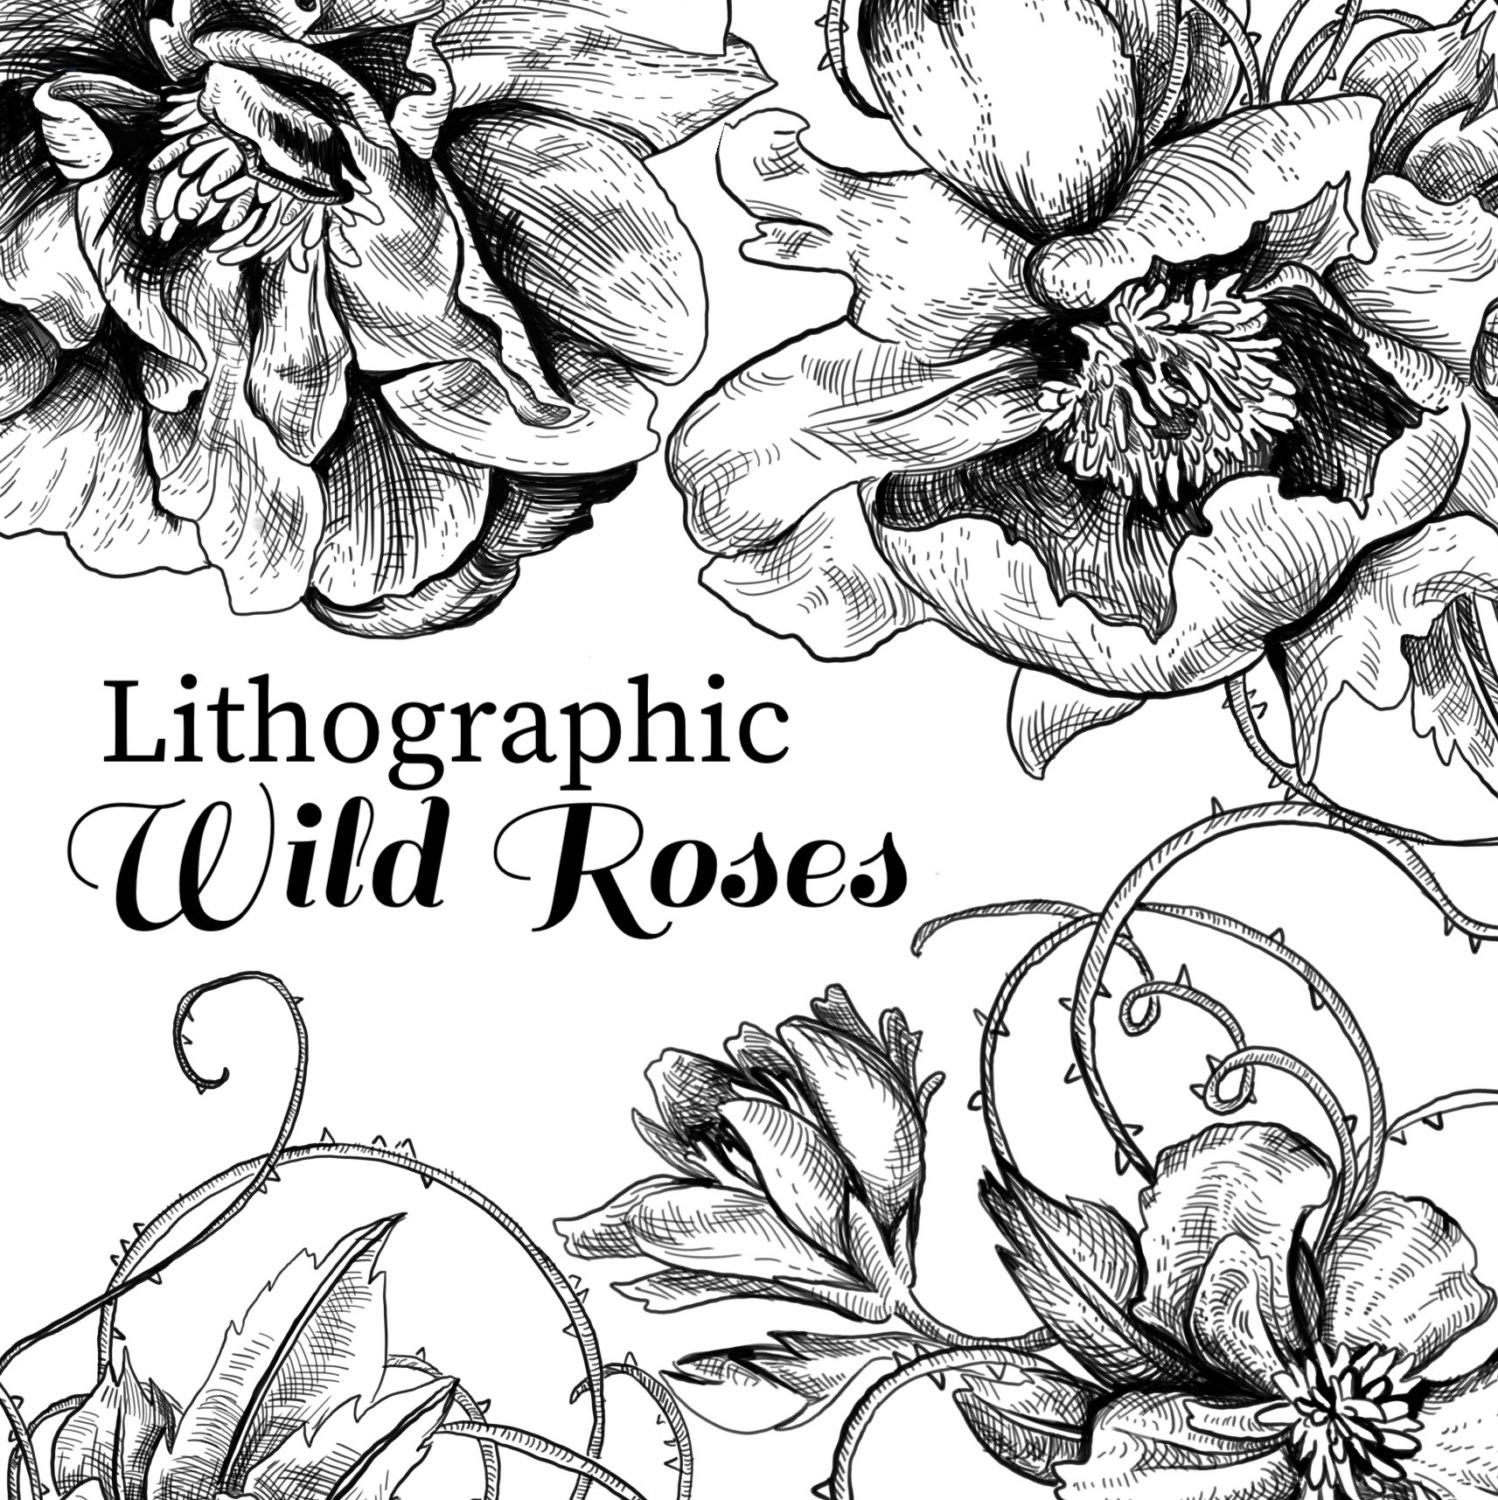 1498x1500 Floral Clipart Wild Roses Lithographs Vintage Clipart Rose